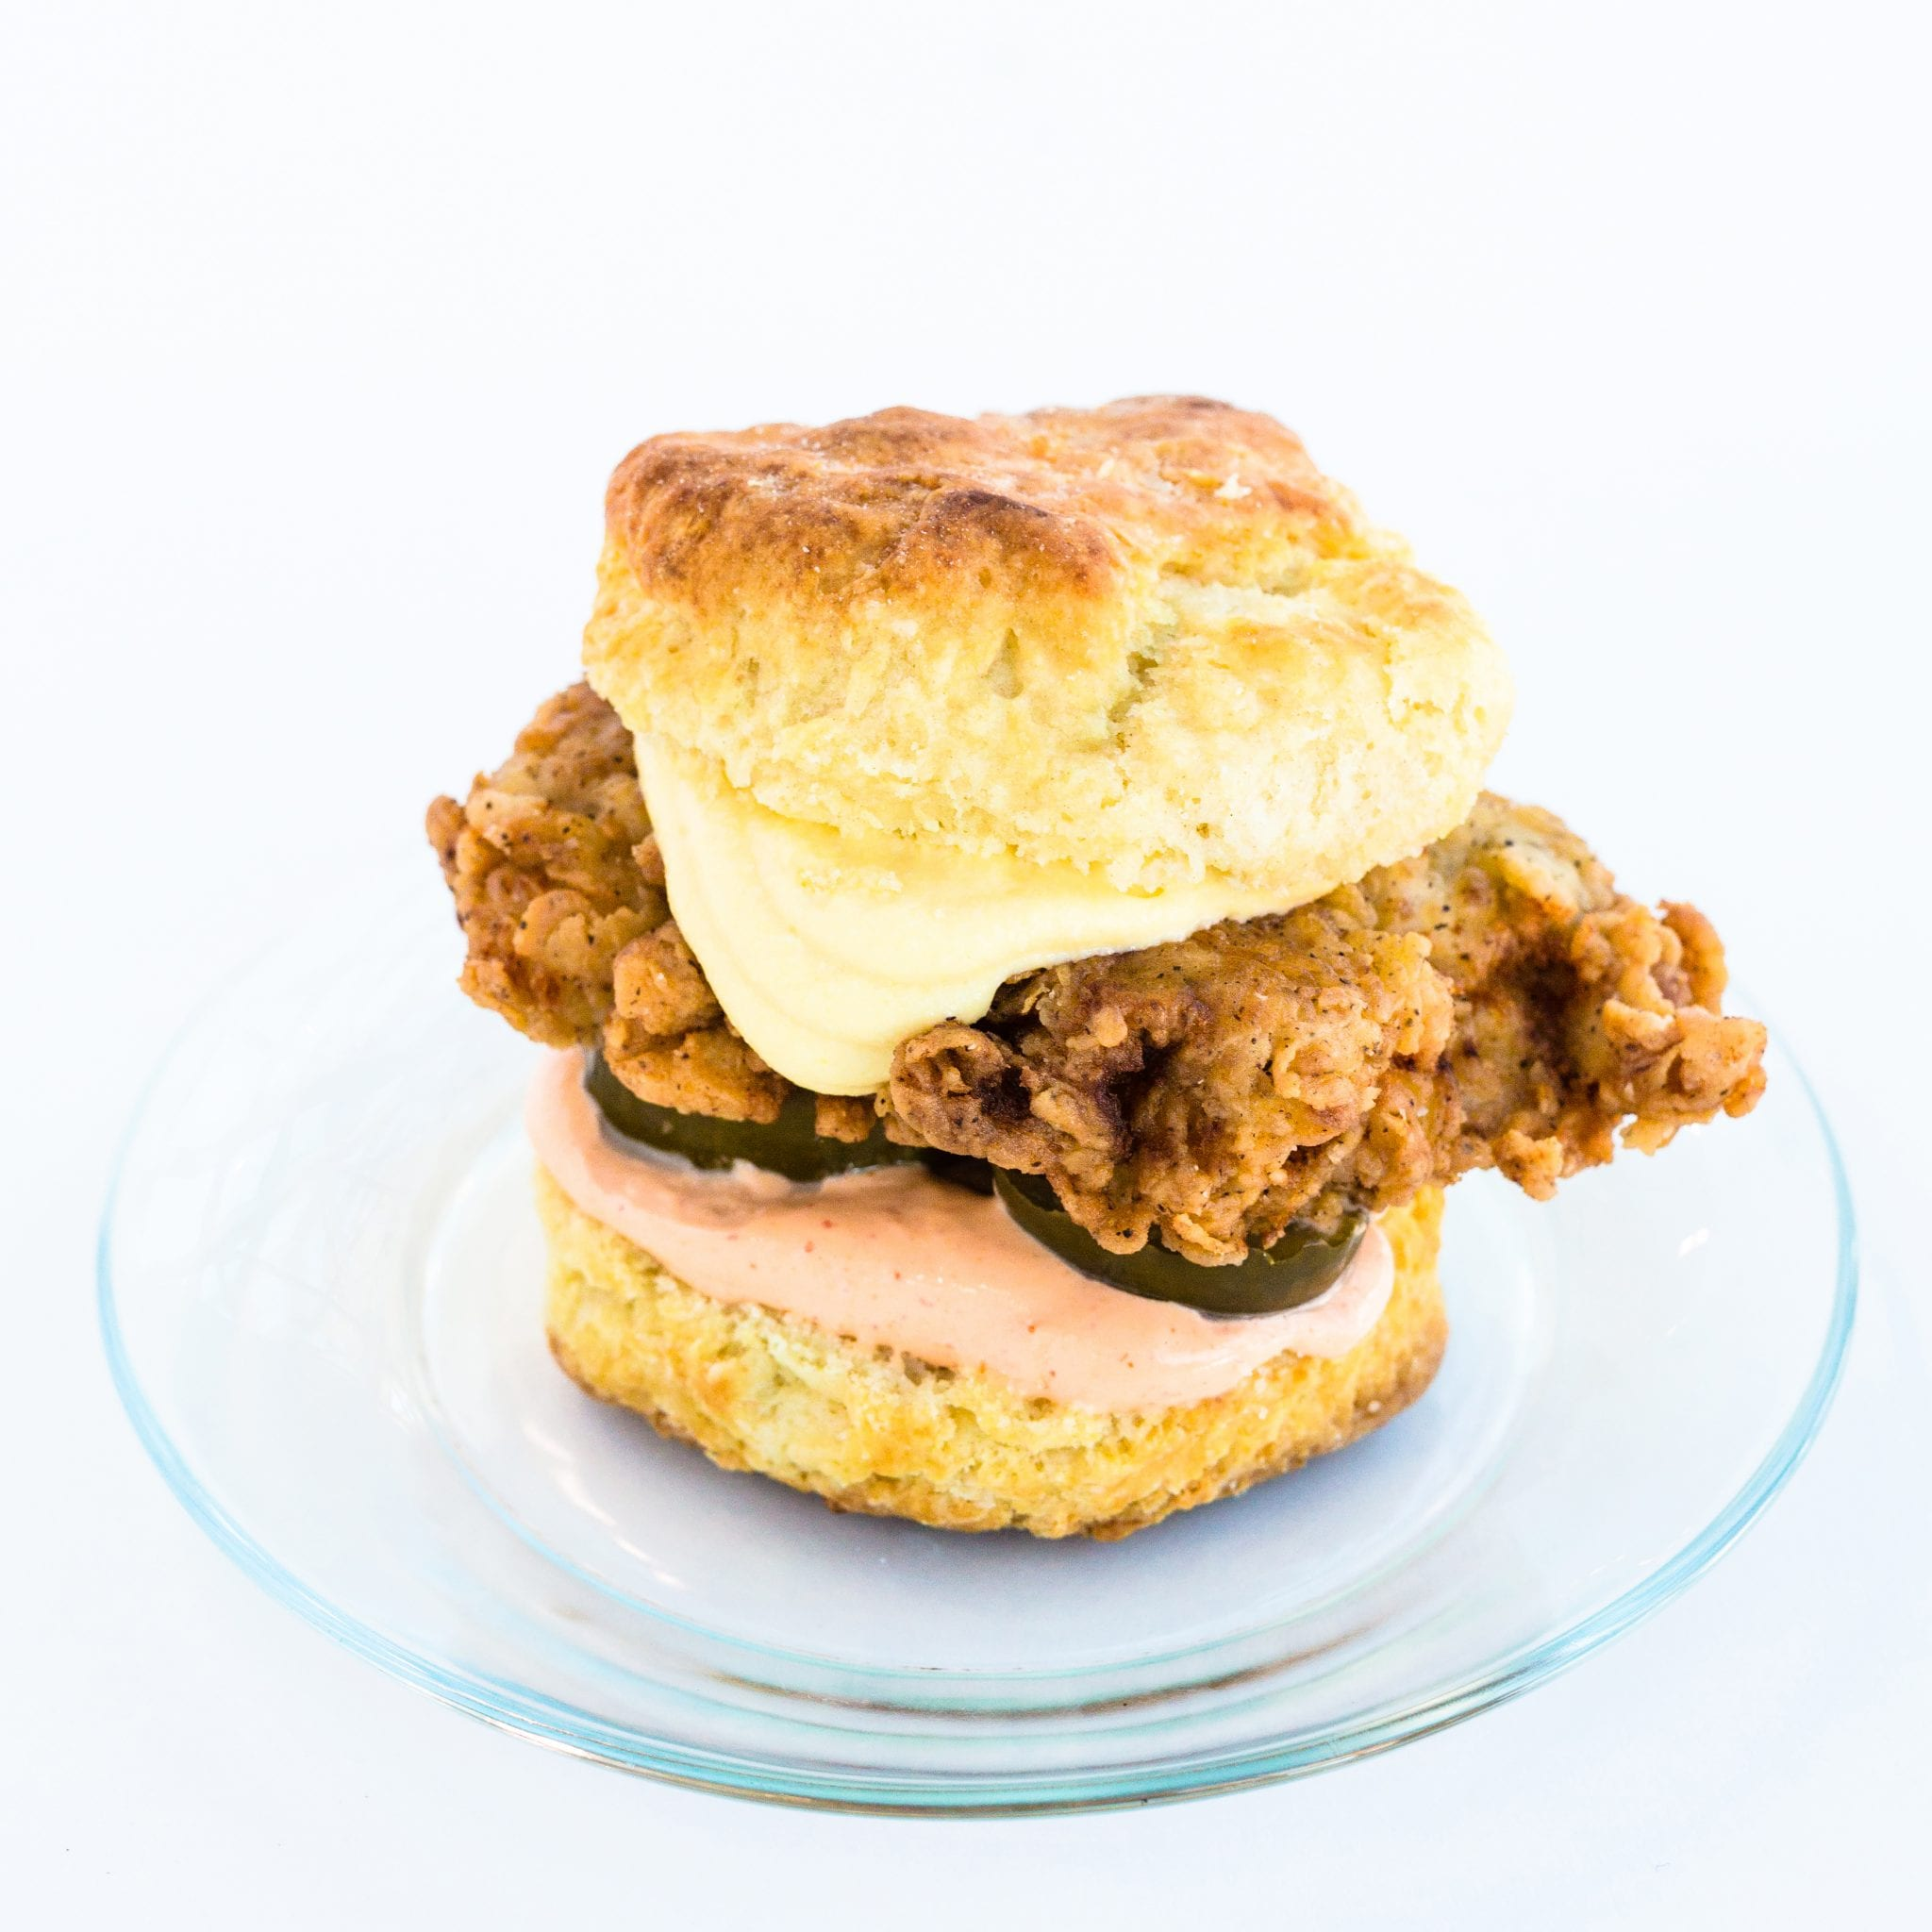 Sarah Simmons' Fried Chicken Biscuit